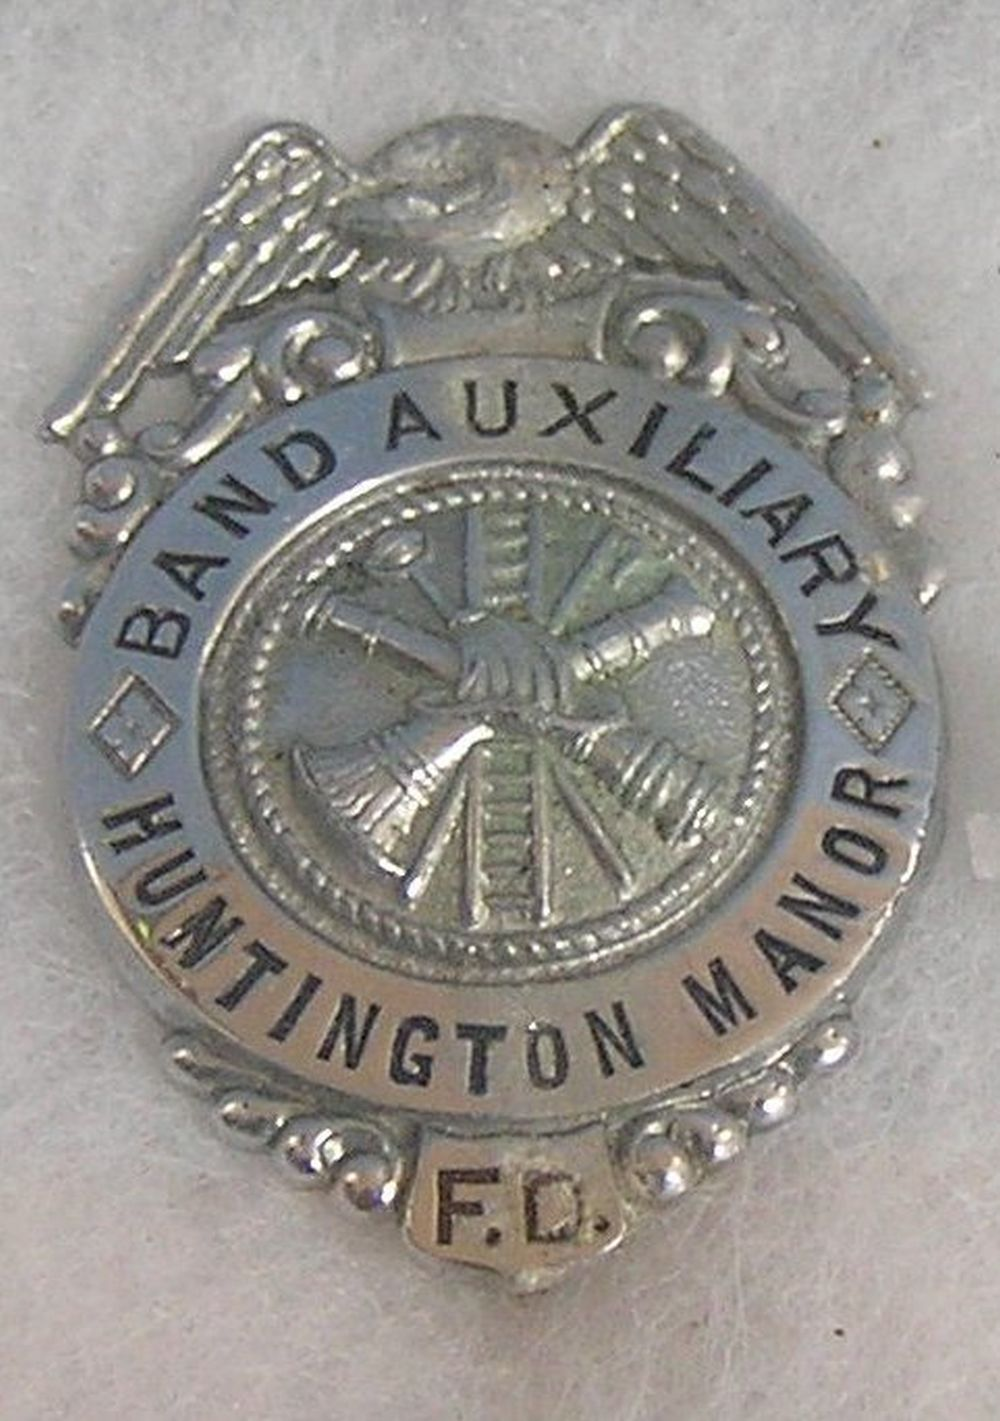 VINTAGE HUNTINGTON FIRE BADGE